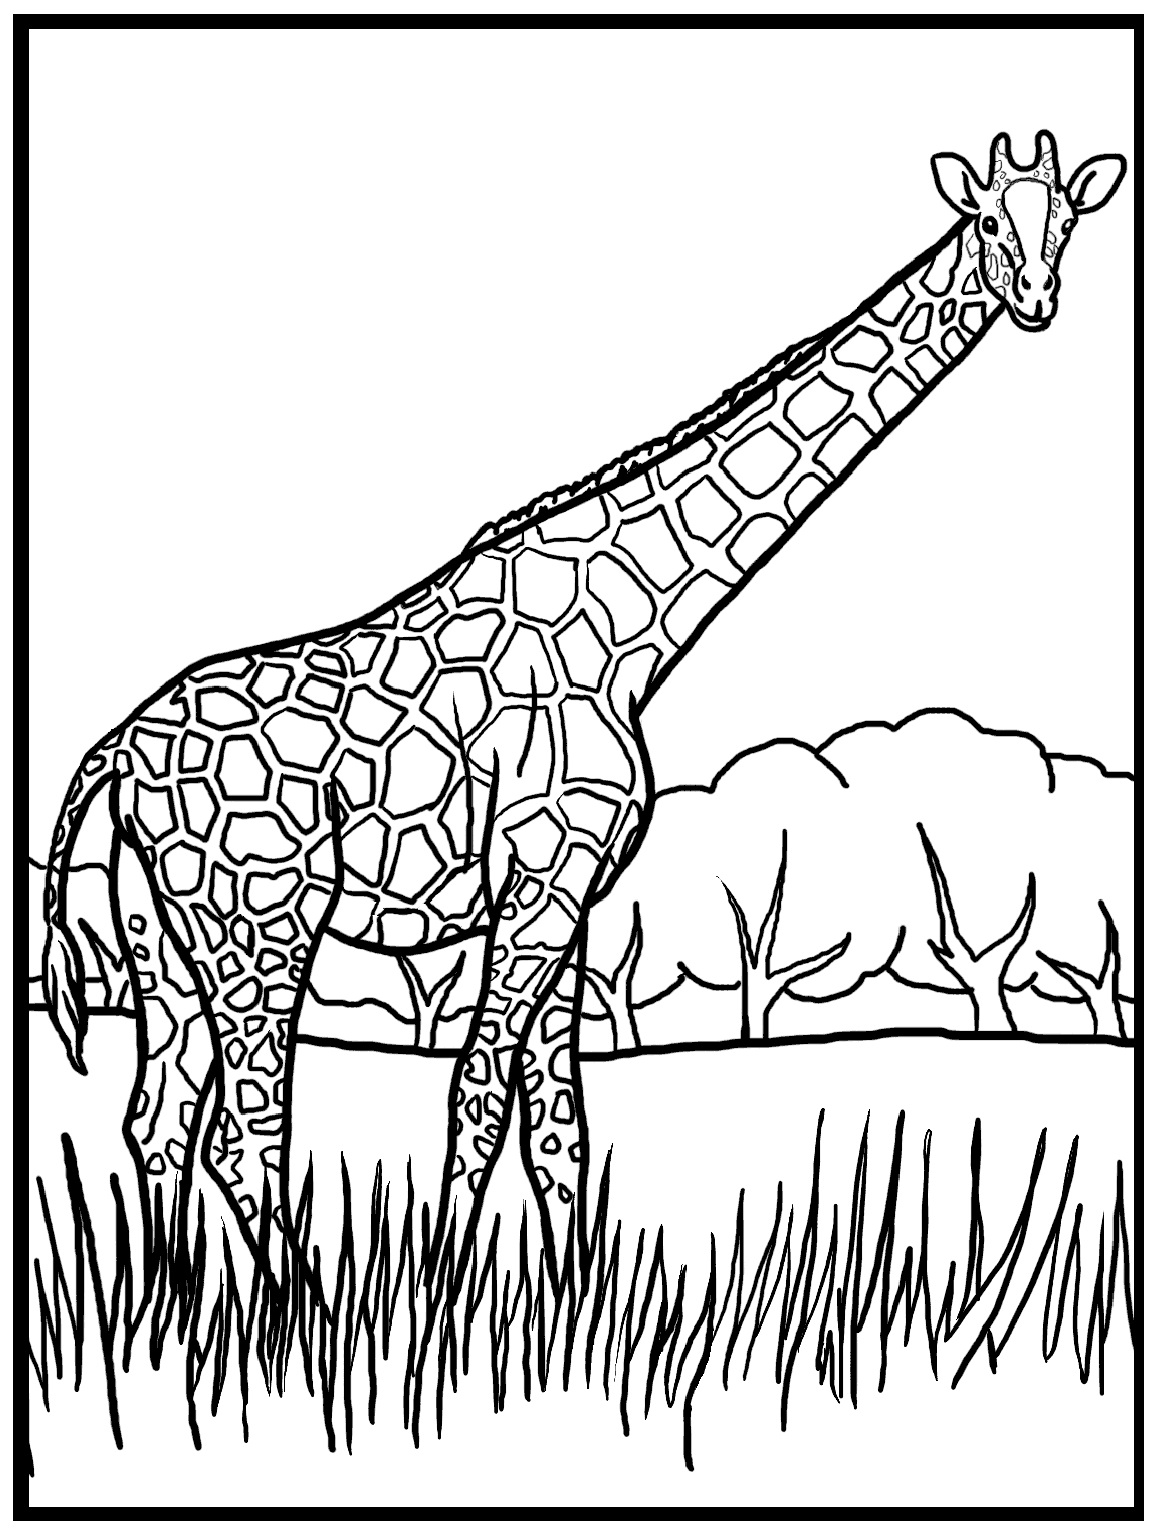 1160x1532 Coloring Pages Giraffe Colouring Page Giraffe Colouring Pages